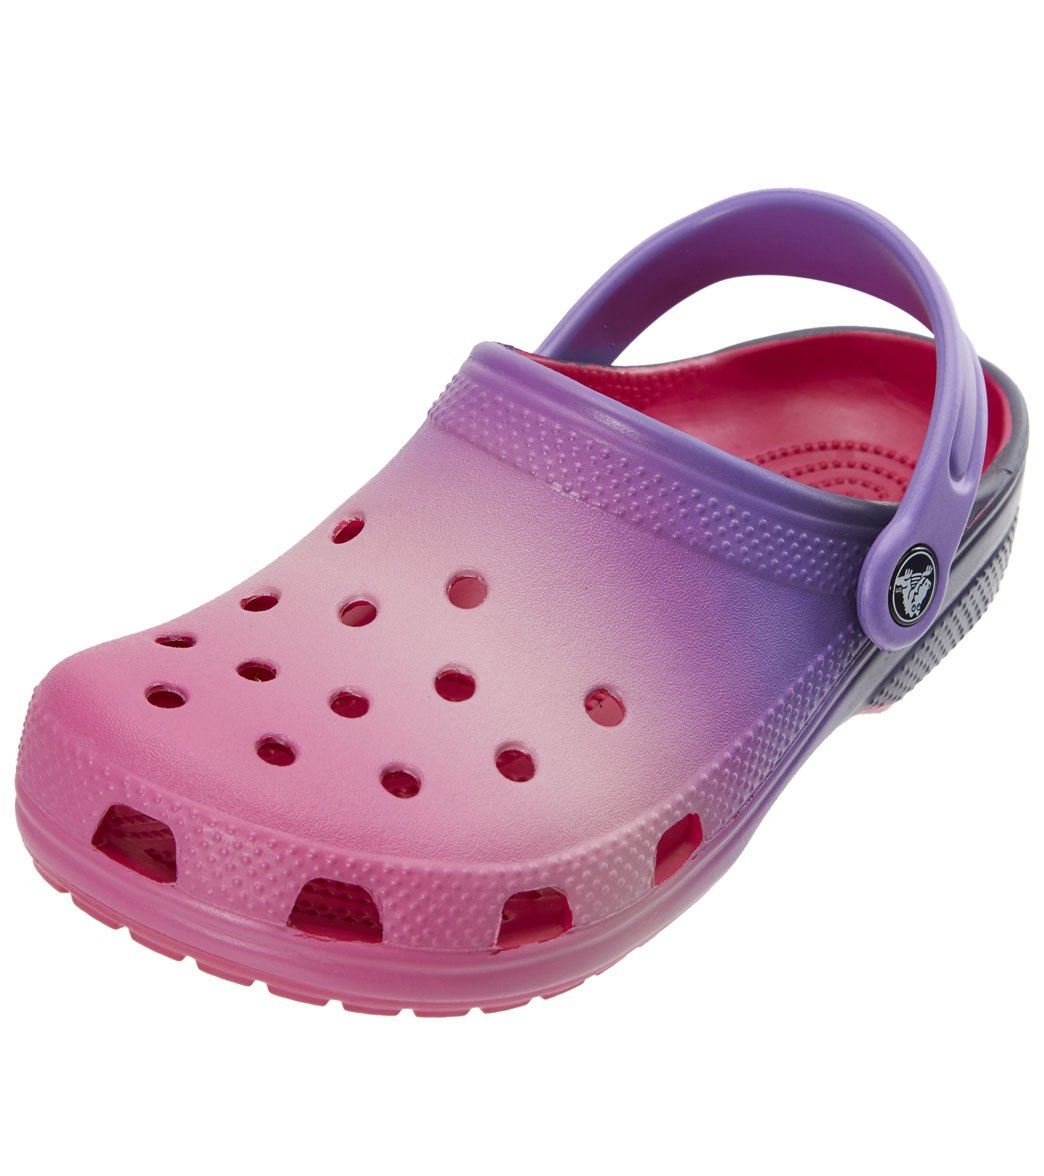 6bf9bf0aeaa4d Crocs Kids  Classic Ombre Clog (Toddler